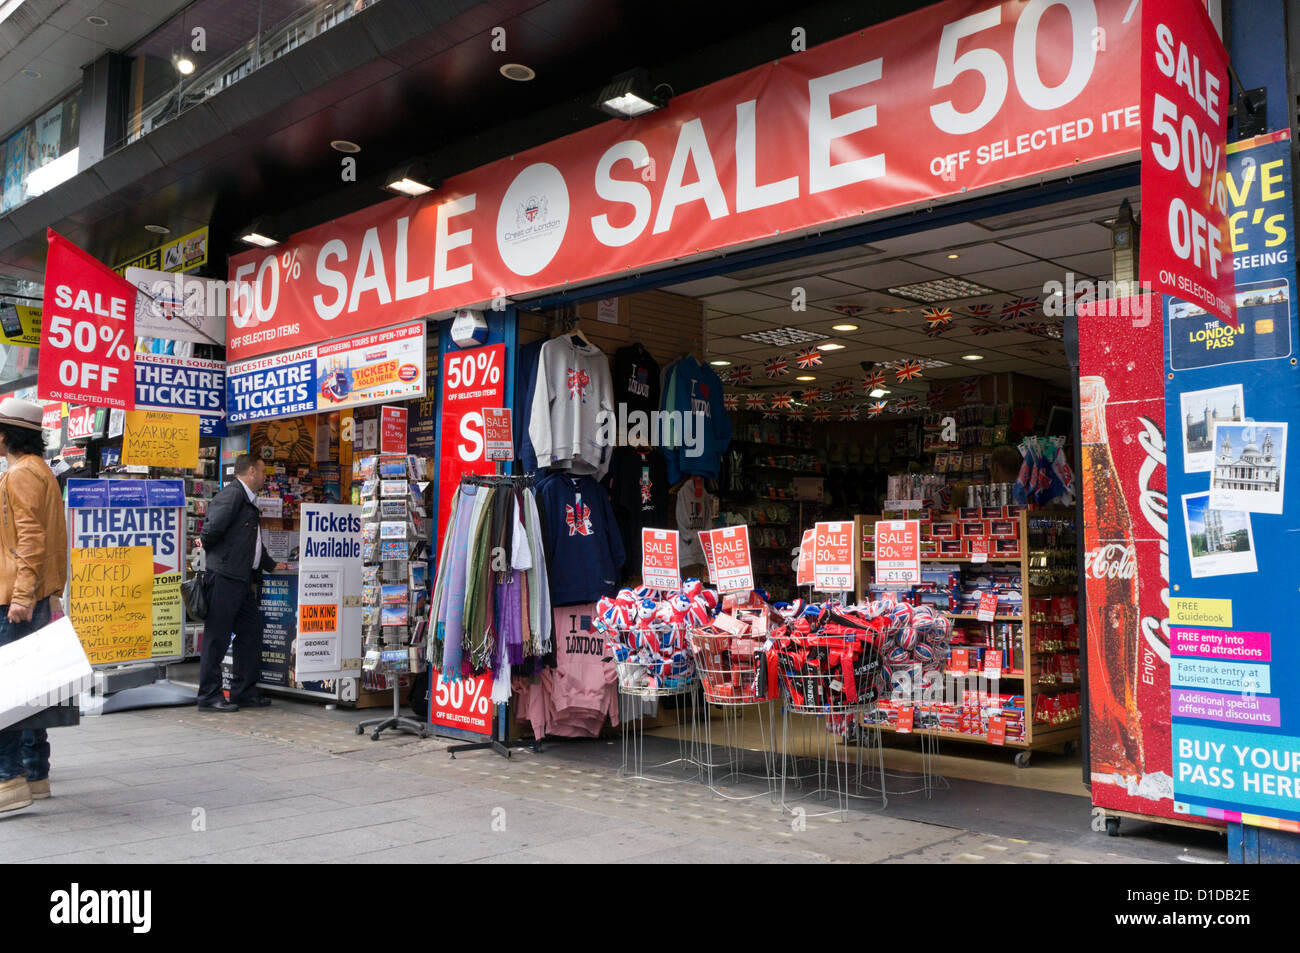 Souvenir shop in Leicester Square, London. - Stock Image